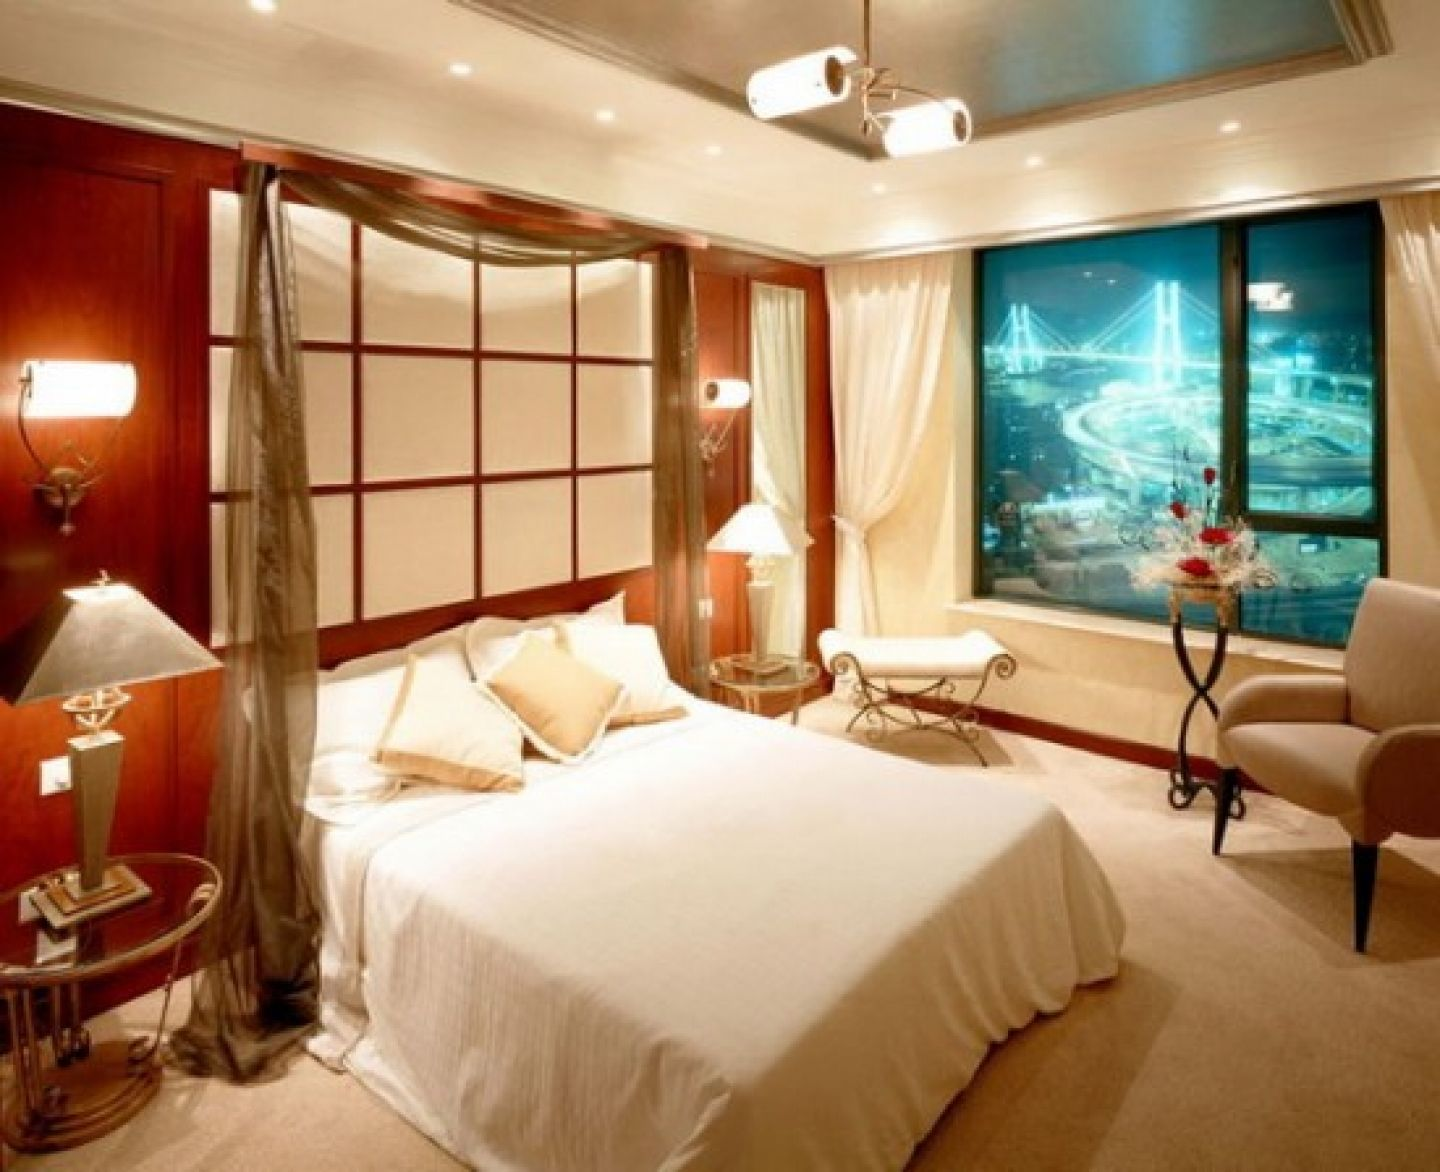 33 Romantic Bedroom Decor Ideas For Couple Aida Homes Cheap Hot Bedroom  Designs, Gallery 33 Romantic Bedroom Decor Ideas For Couple Aida Homes  Cheap Hot ...